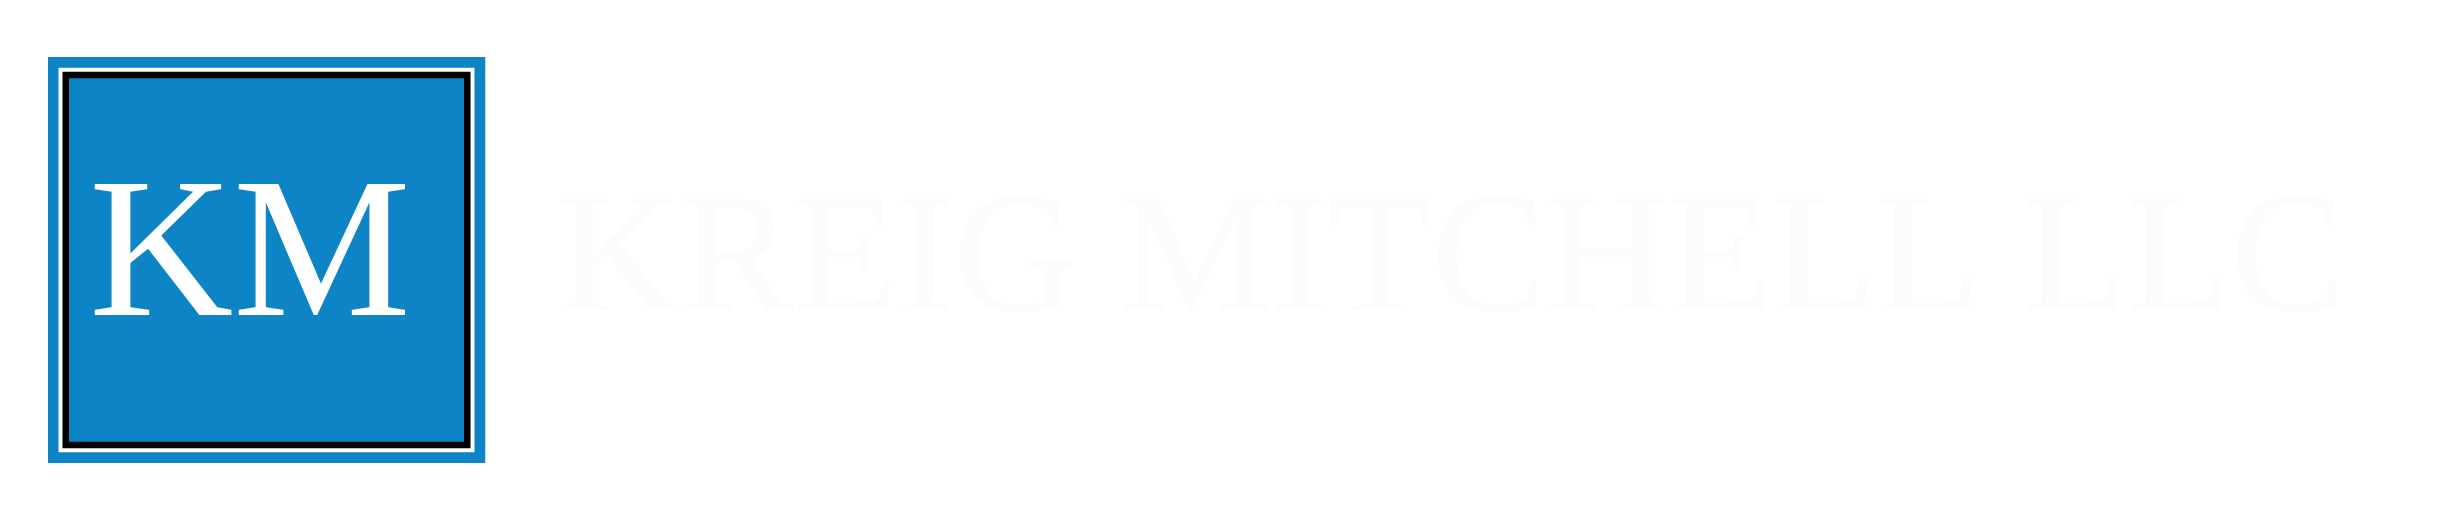 Houston, Tax Attorneys: Kreig Mitchell LLC